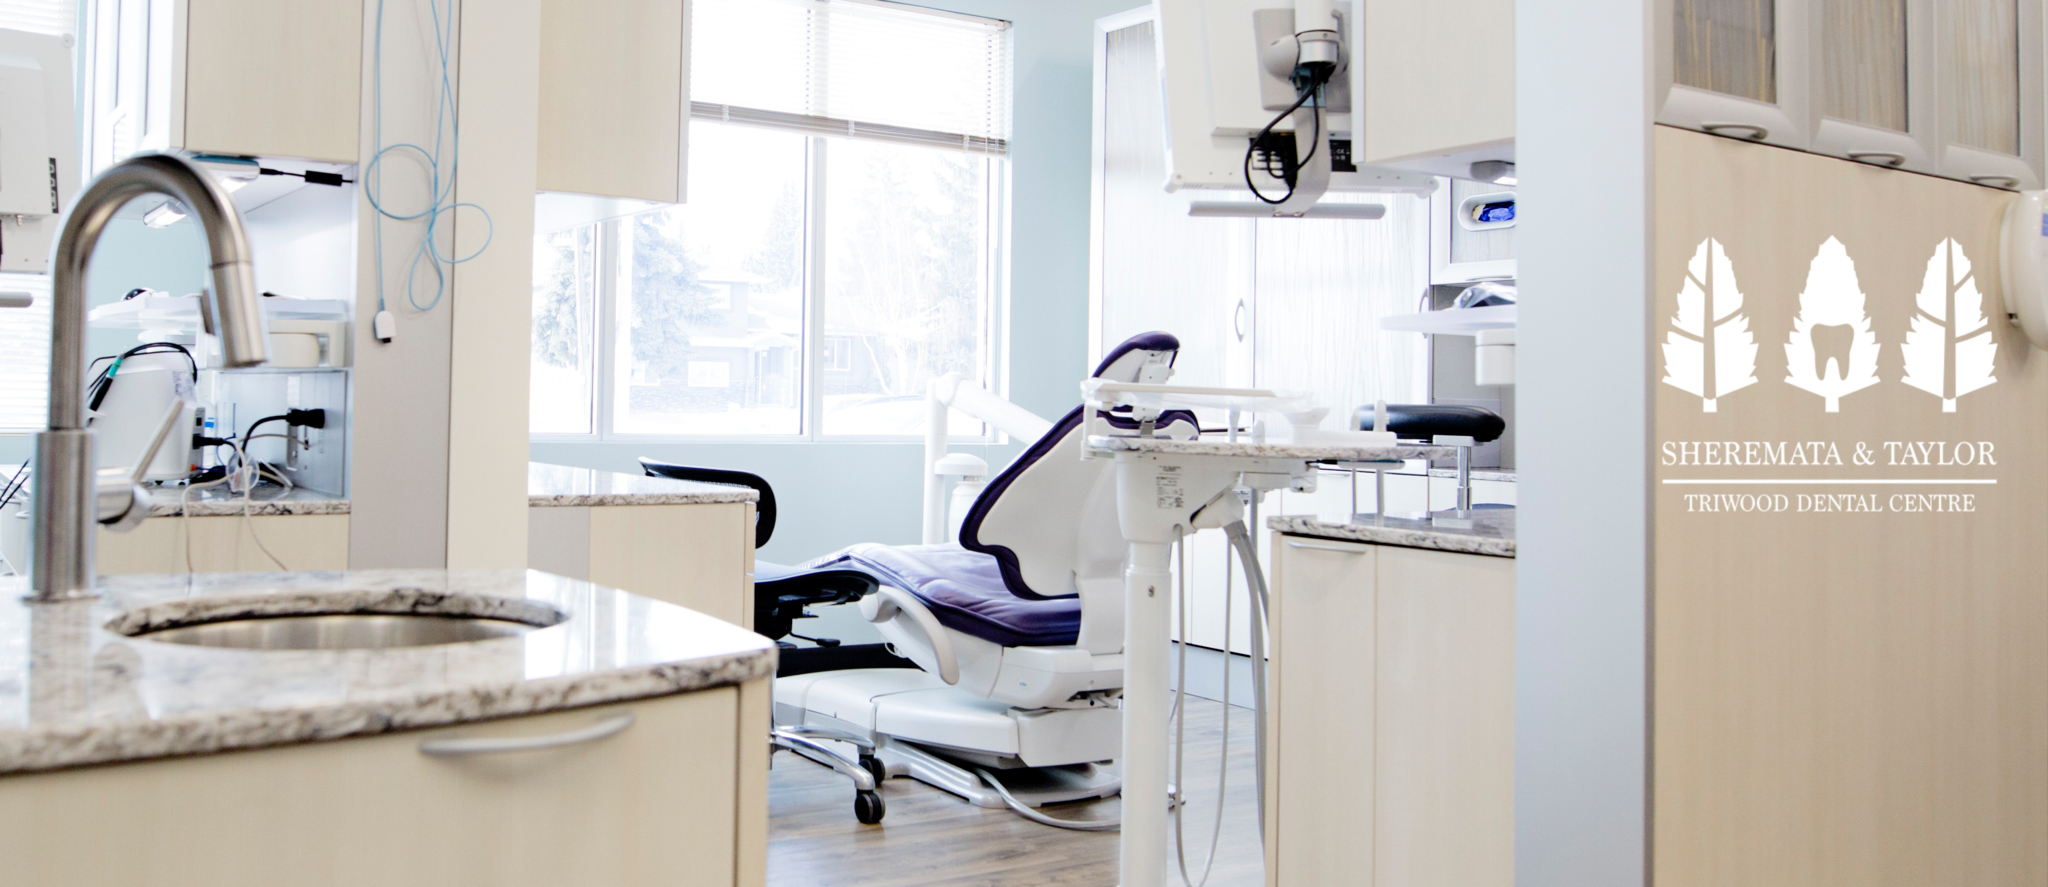 Triwood Dental Centre